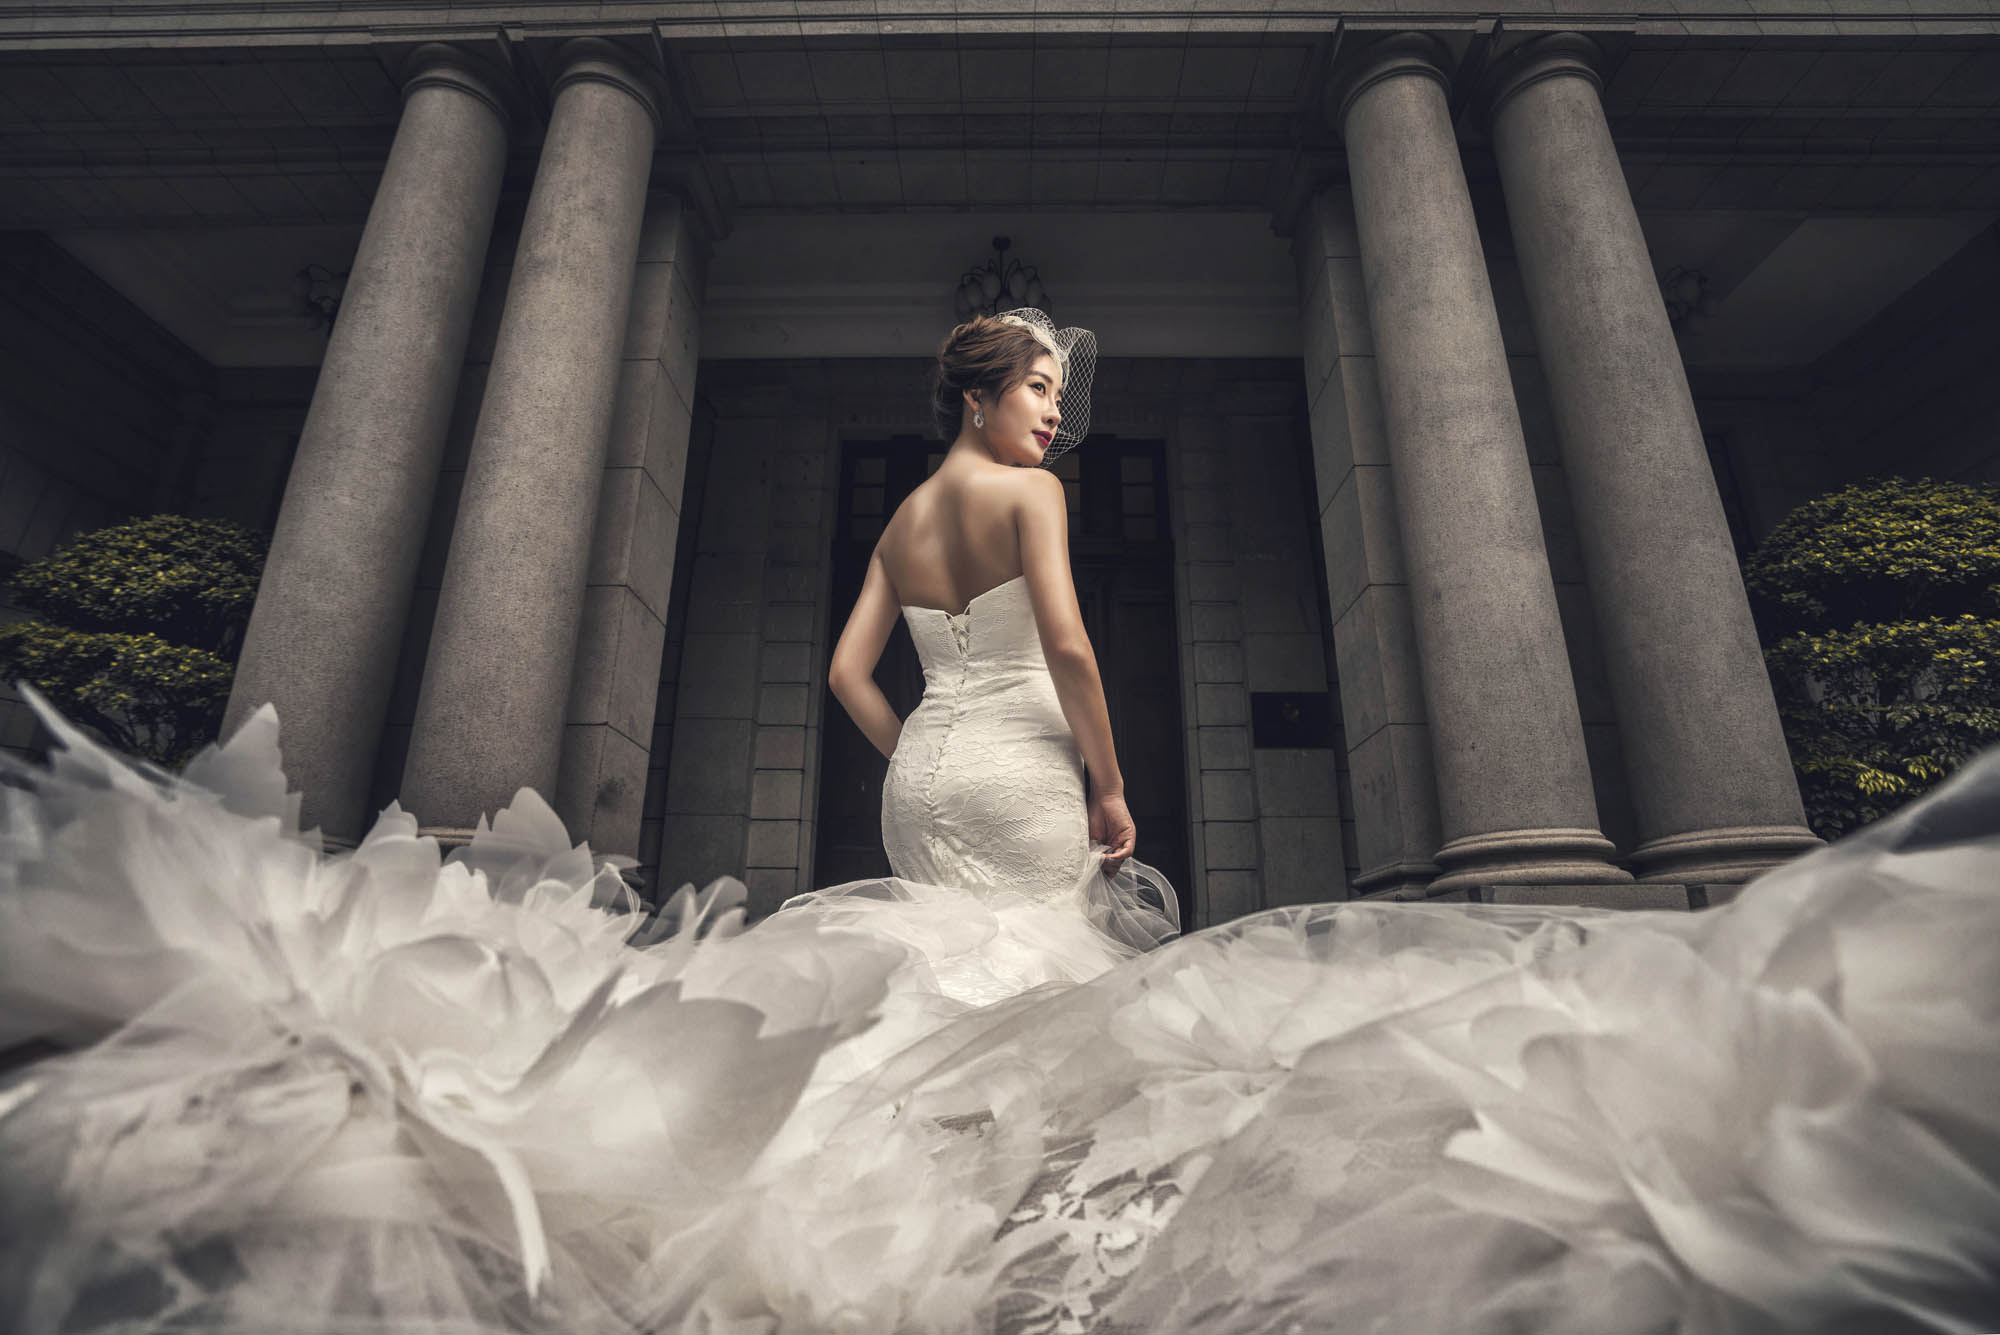 Bride in birdcage veil and epic feathered ballgown by Roman pillars, by CM Leung